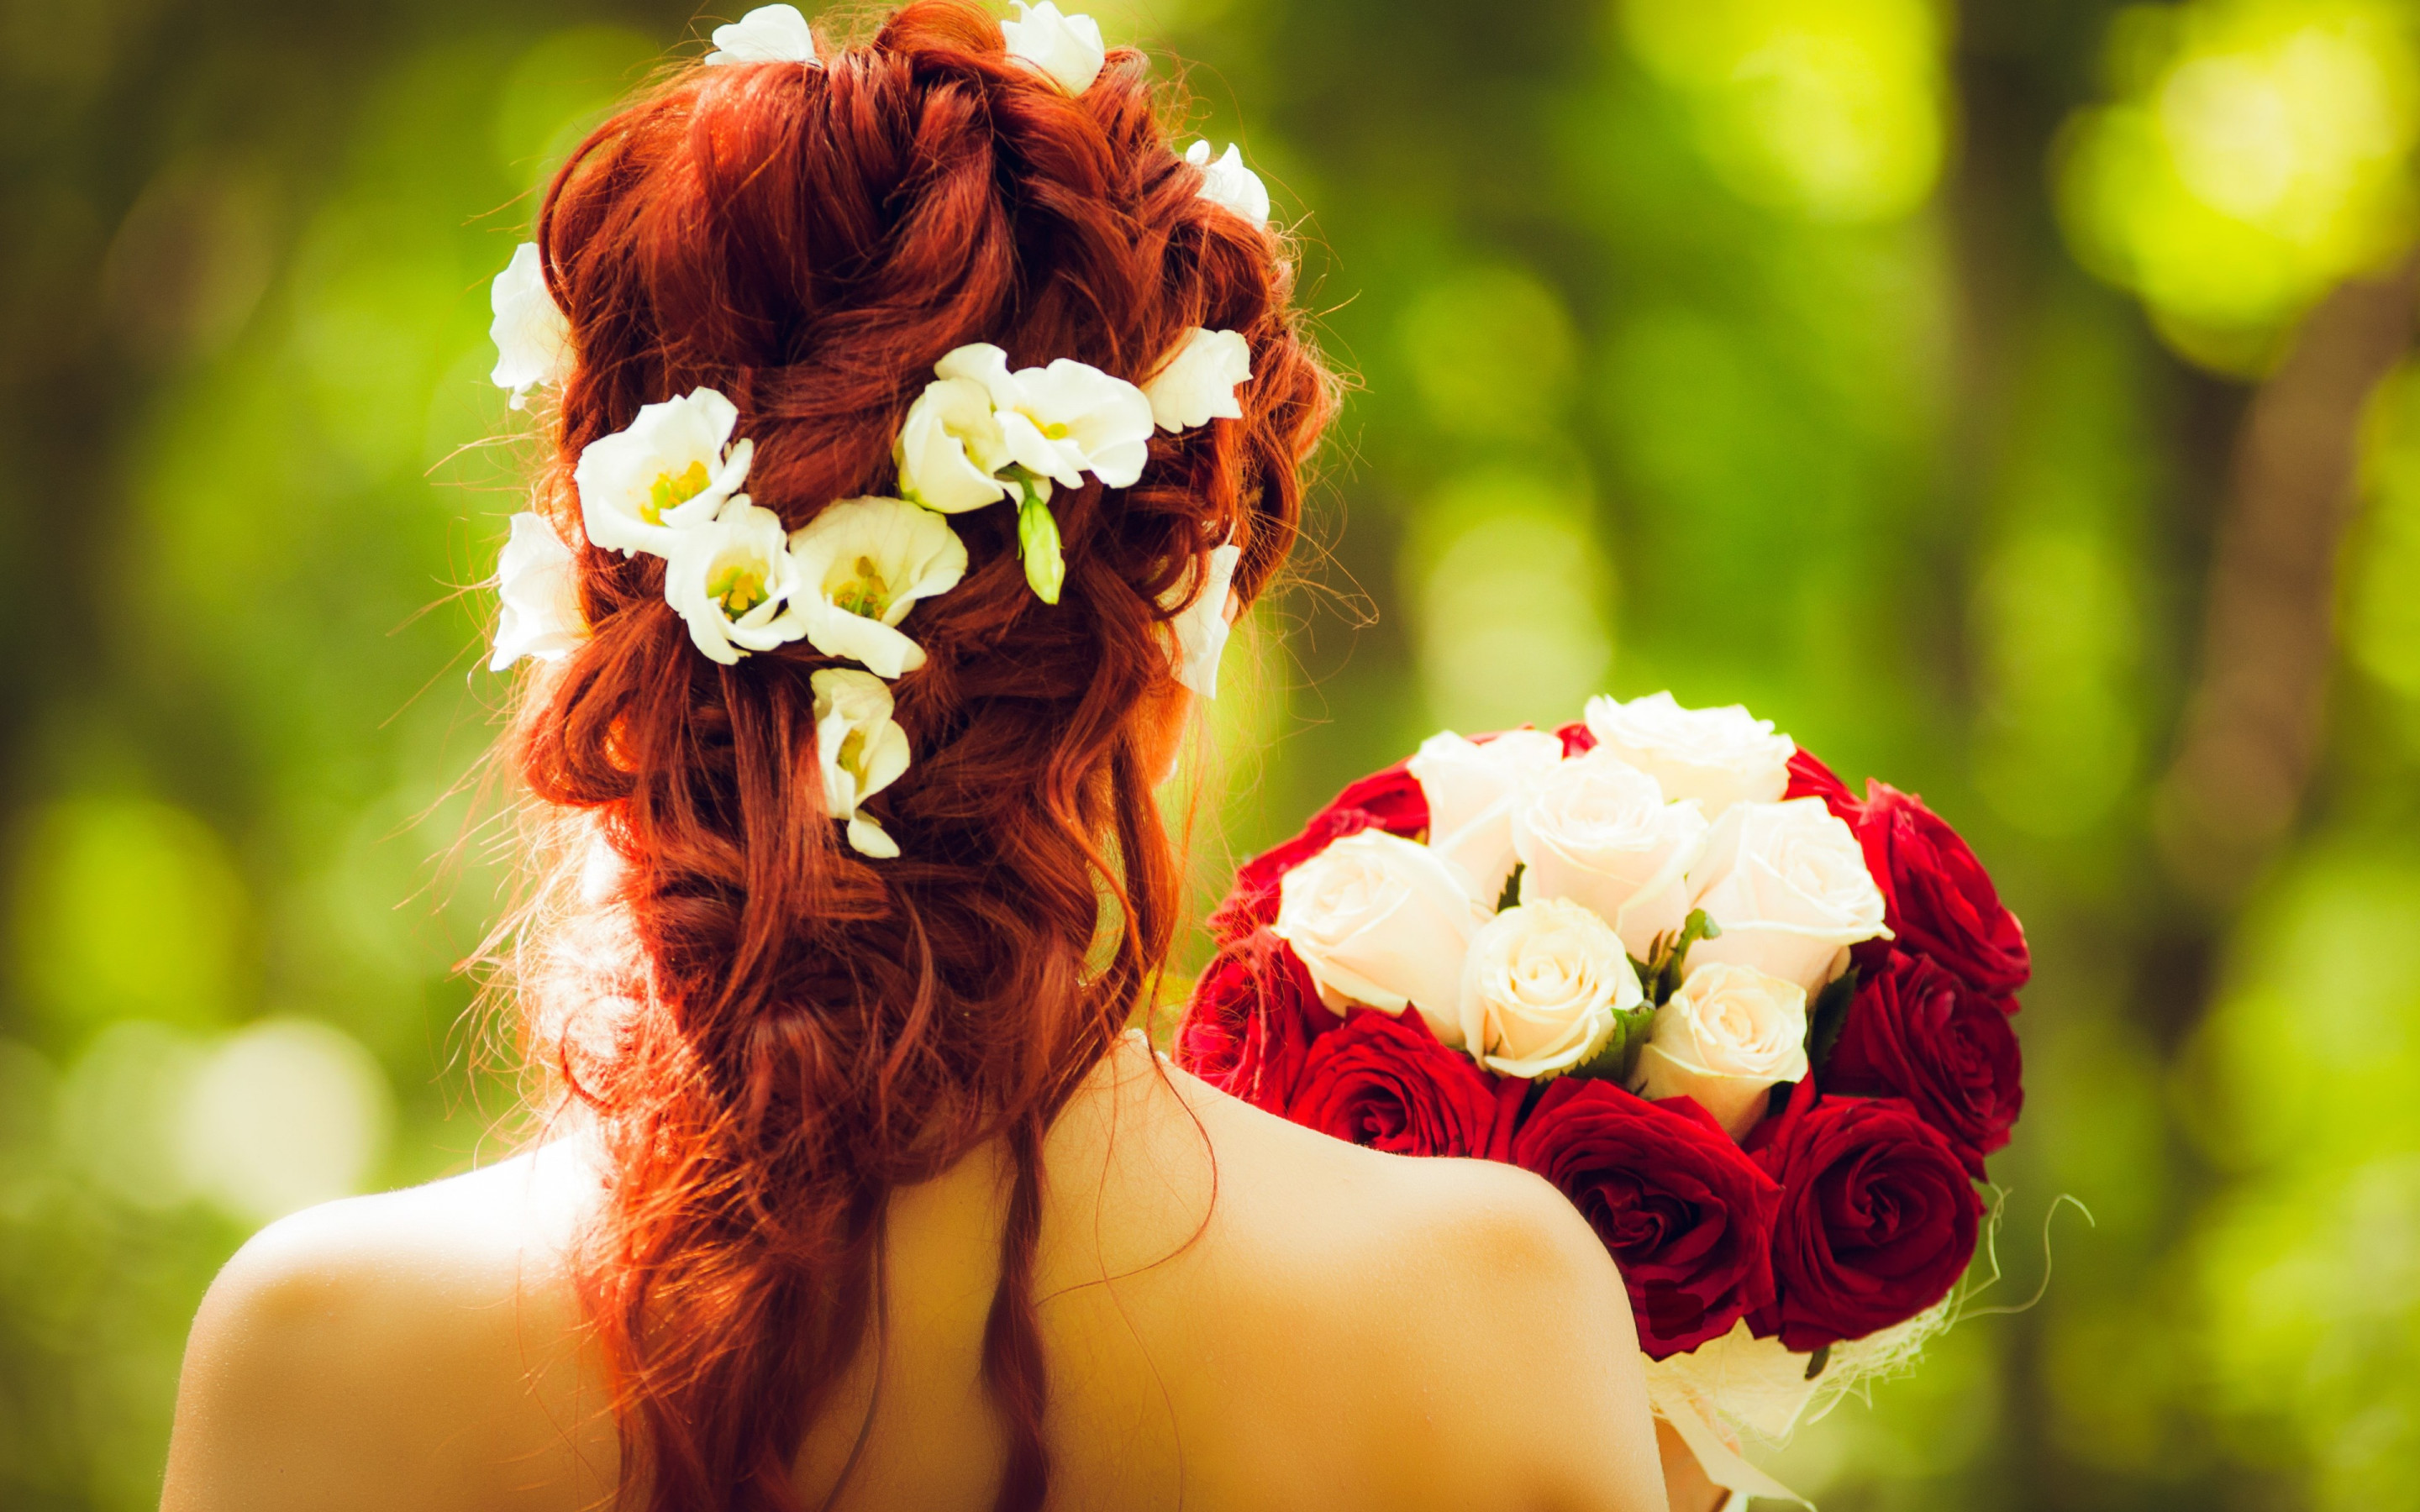 Bride and wedding flowers | 2880x1800 wallpaper